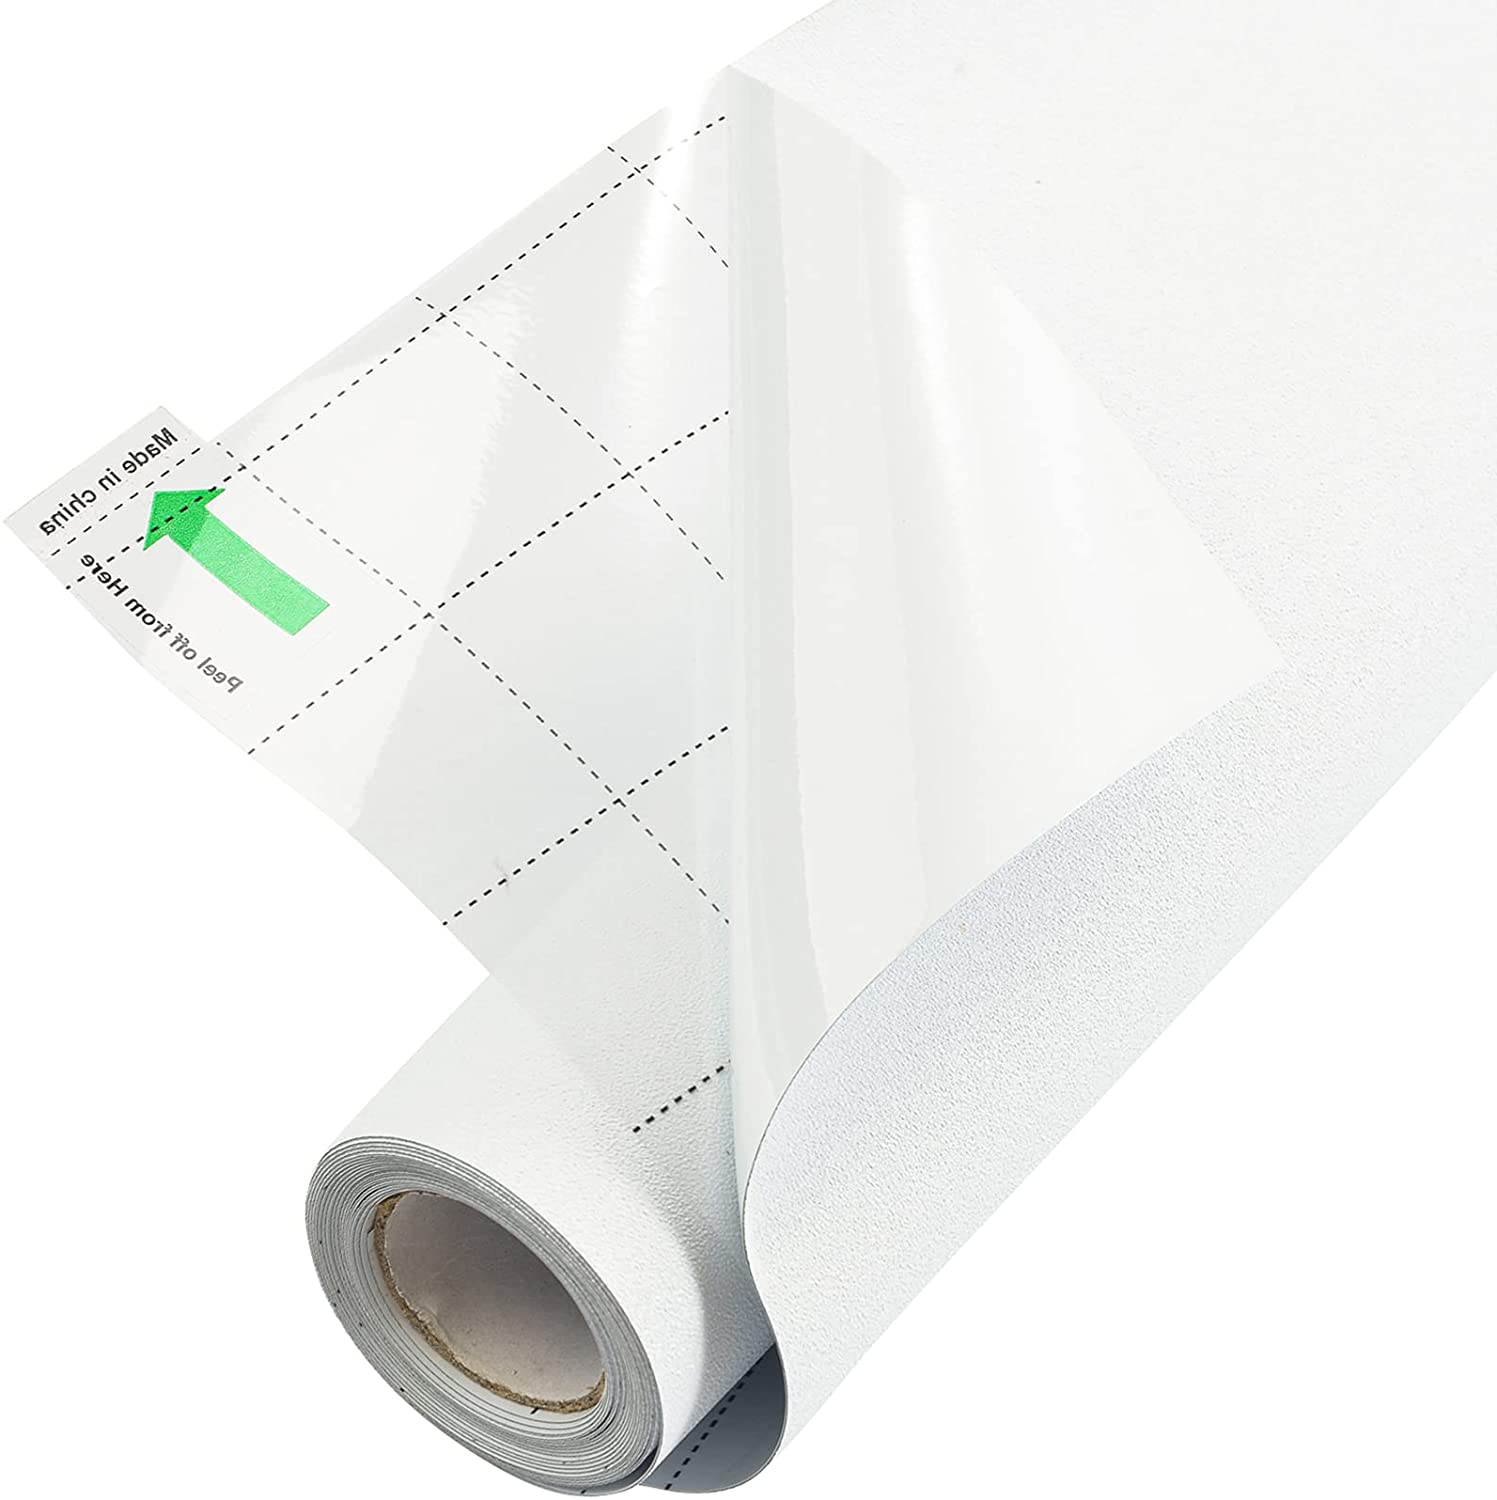 FEOMOS Max 66% OFF White Total Blackout Direct sale of manufacturer Window Cling Film Static Cove